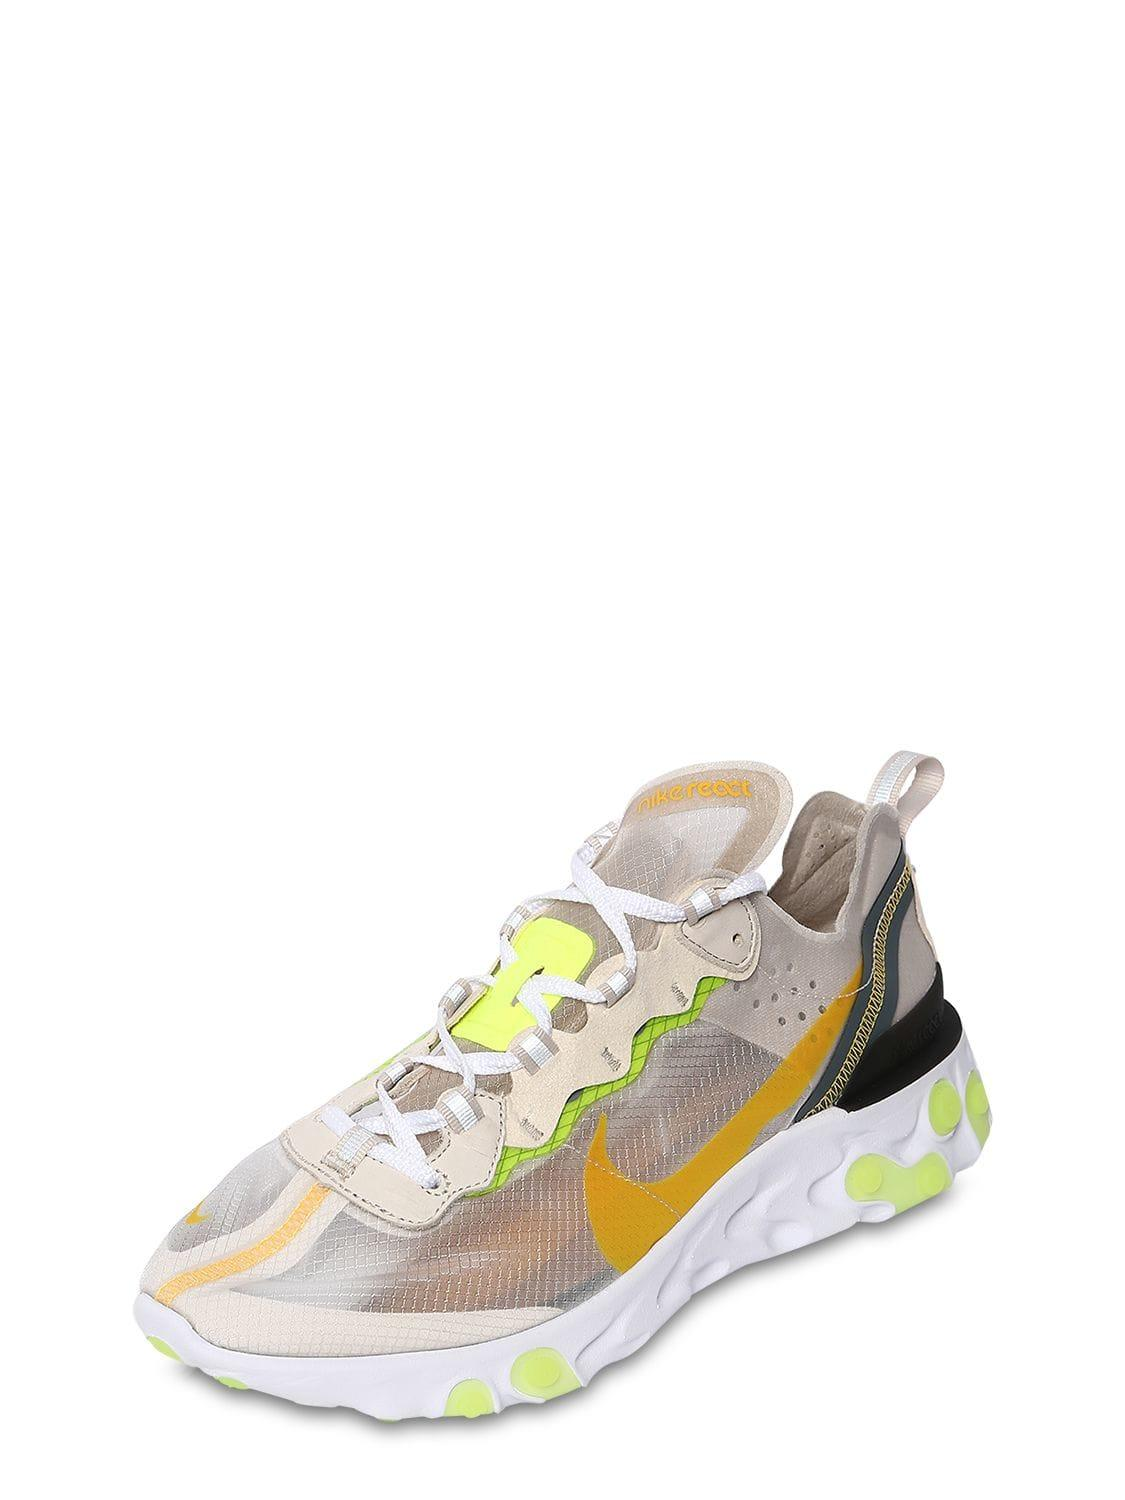 9ec1abb62ef0 Lyst - Nike React Element 87 Sneakers for Men - Save 20.873786407766985%